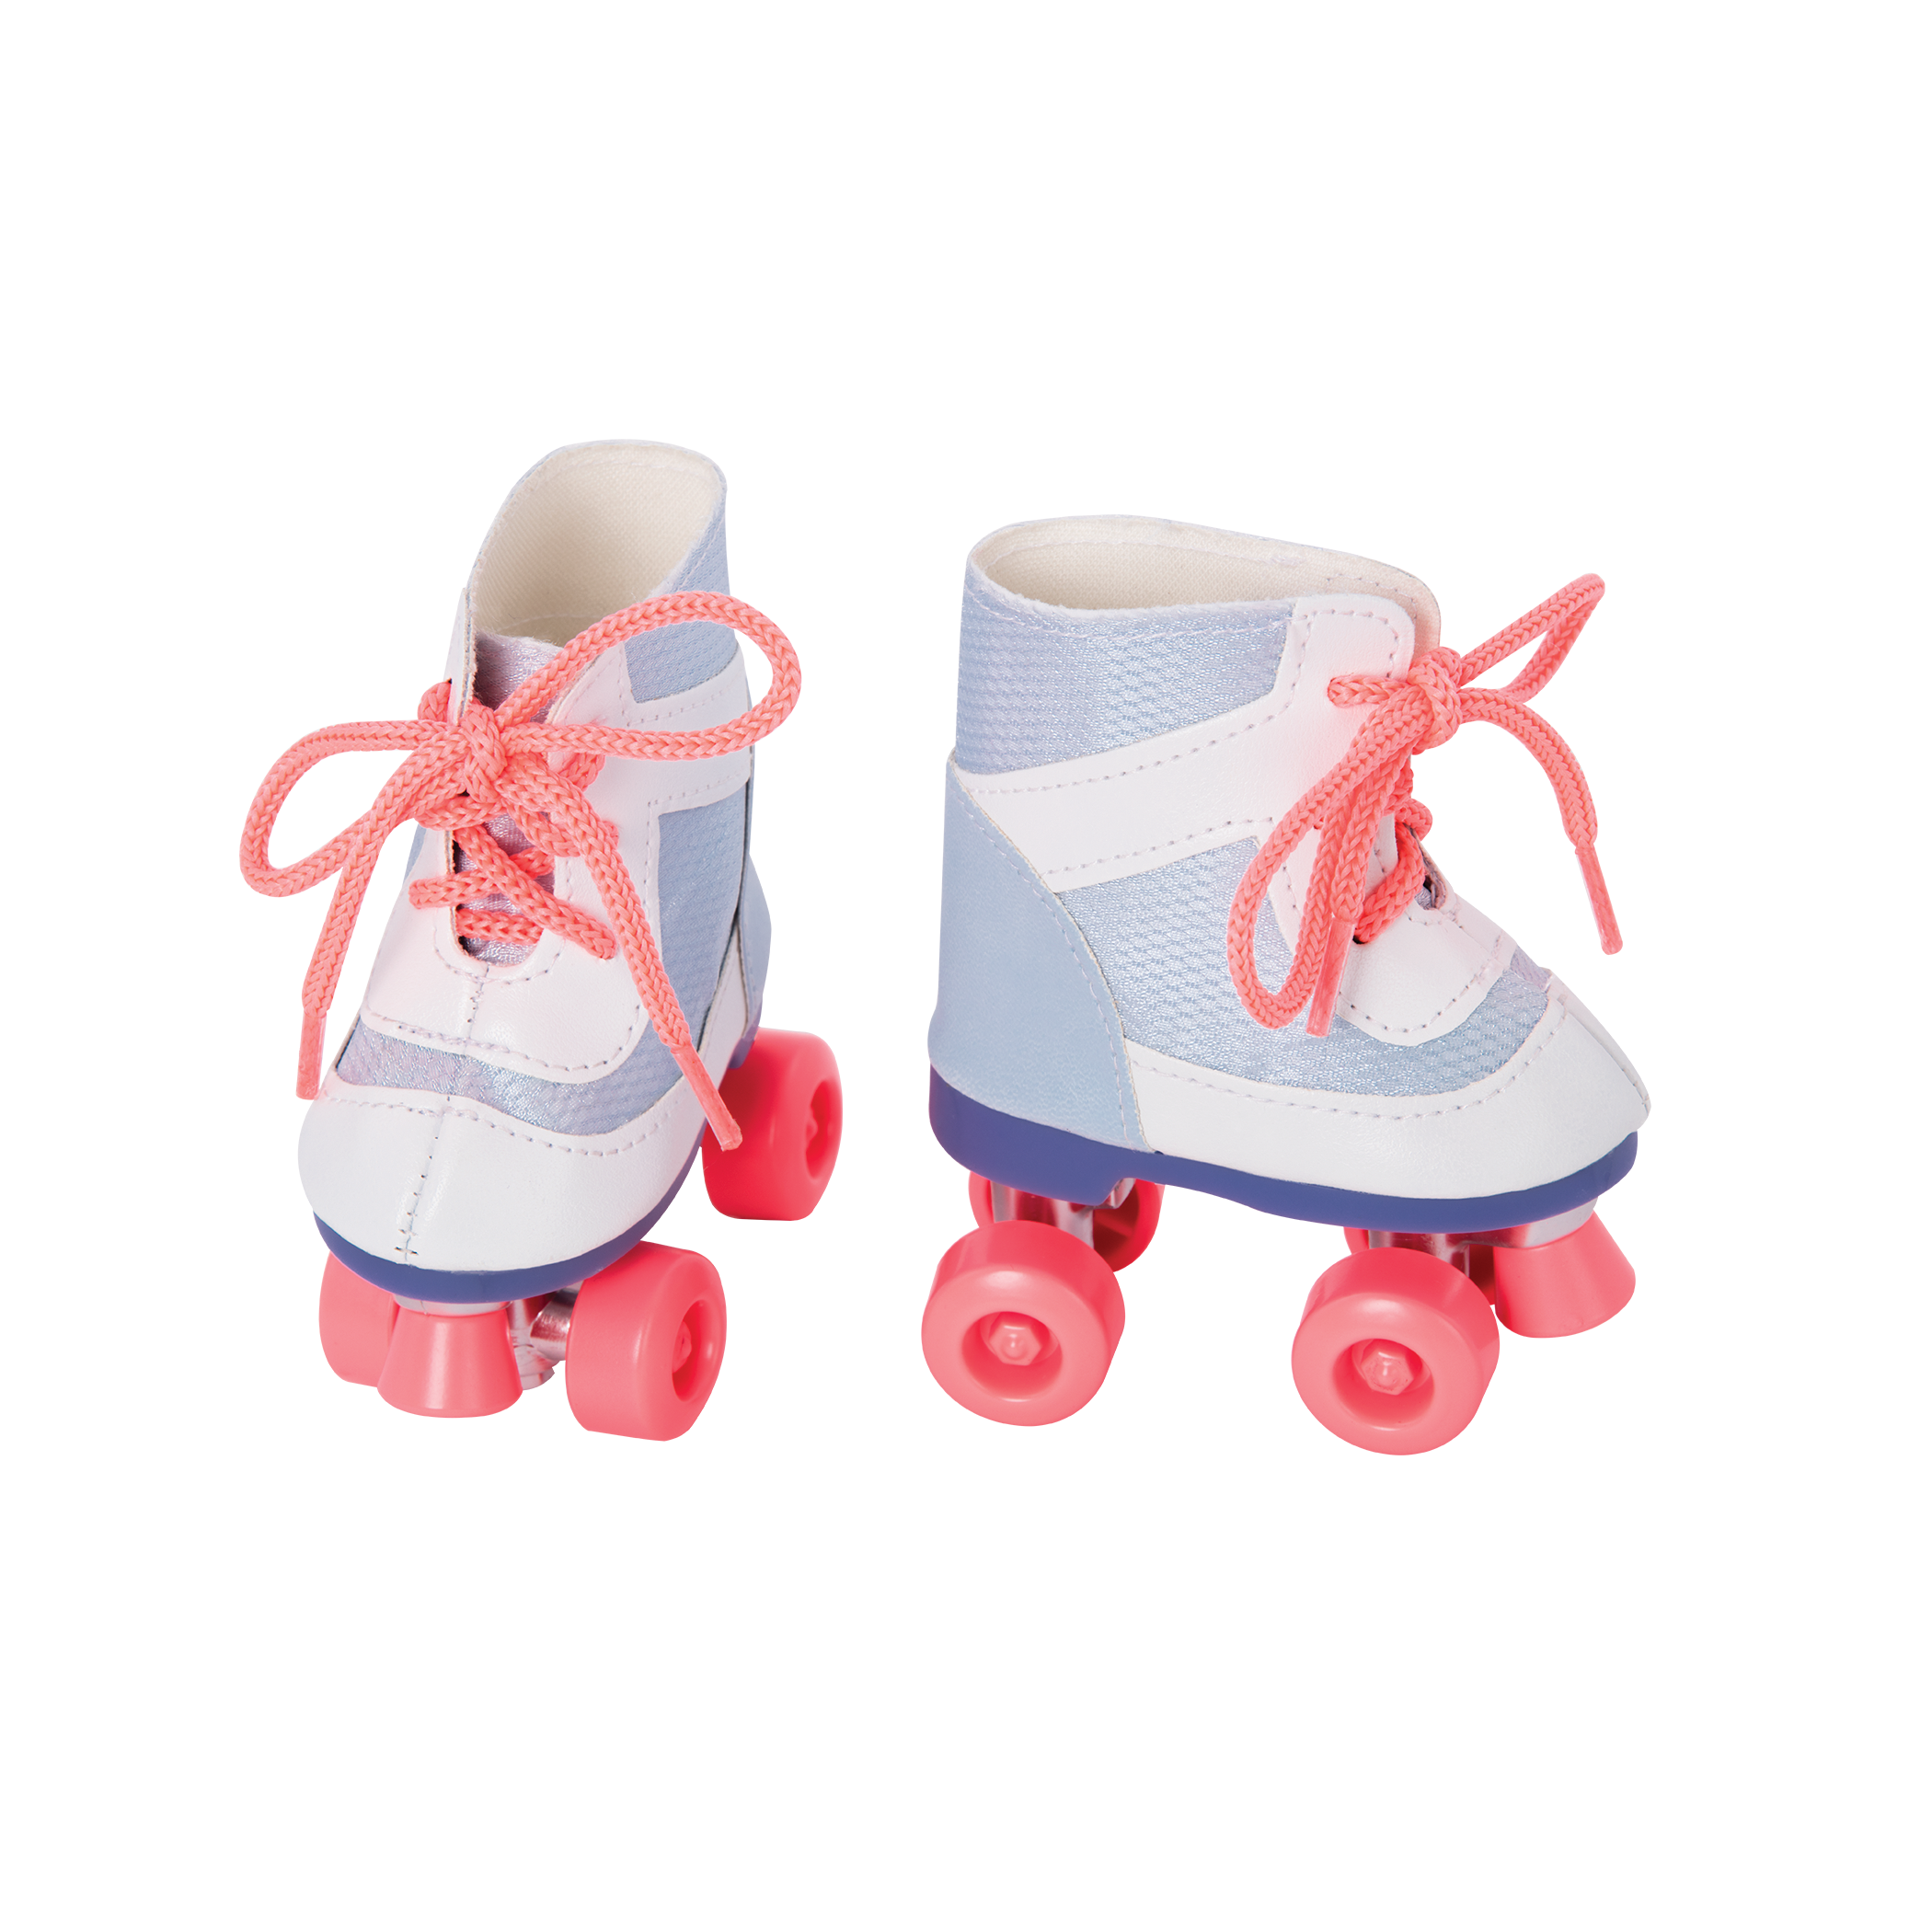 Our Generation Roll With It Roller Skates for 18-inch Dolls